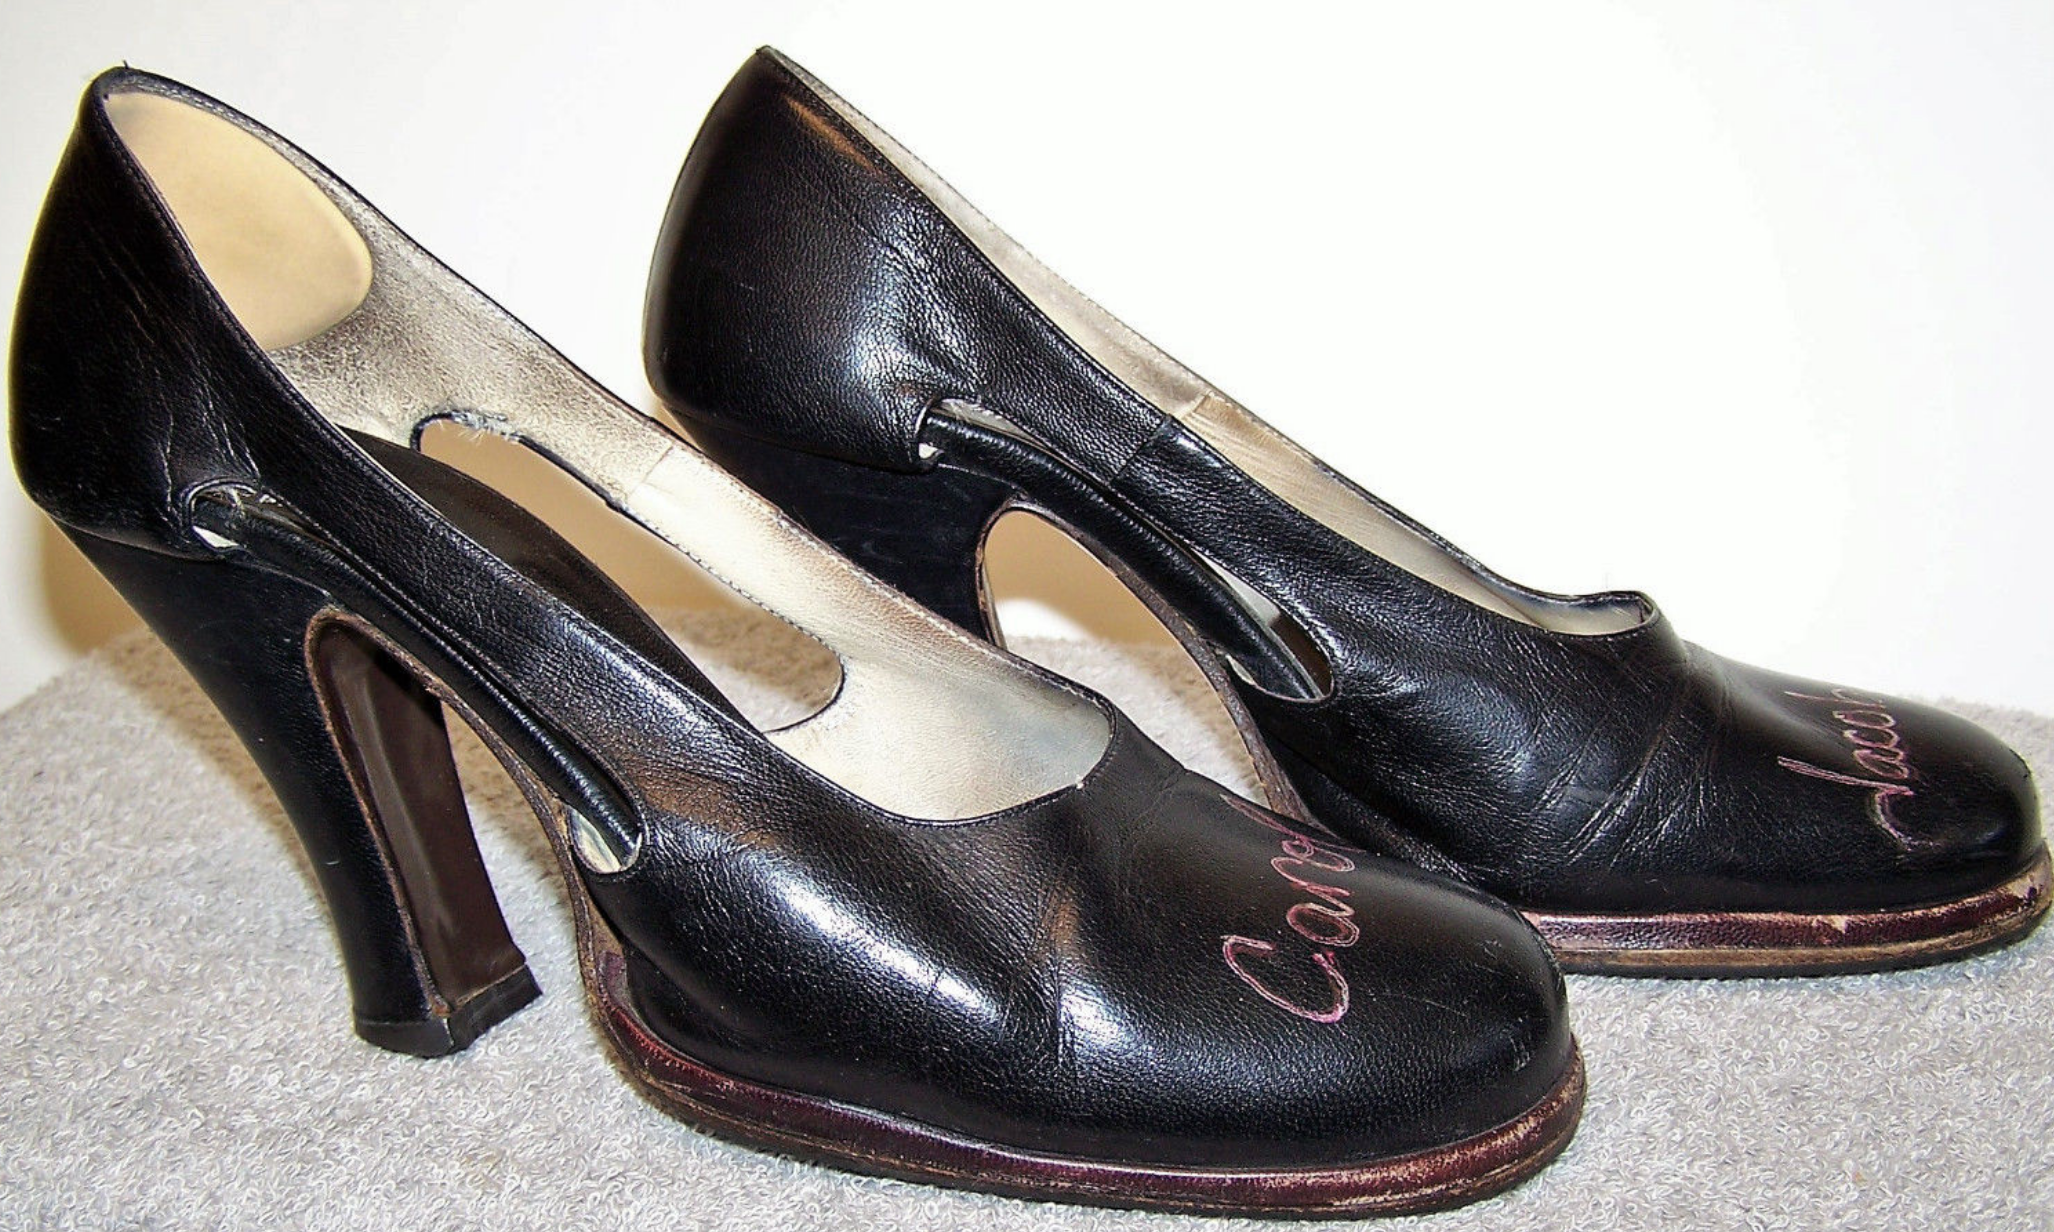 These were absolutely my favorite pair of heels for several years, so please, bid accordingly!! ;-)